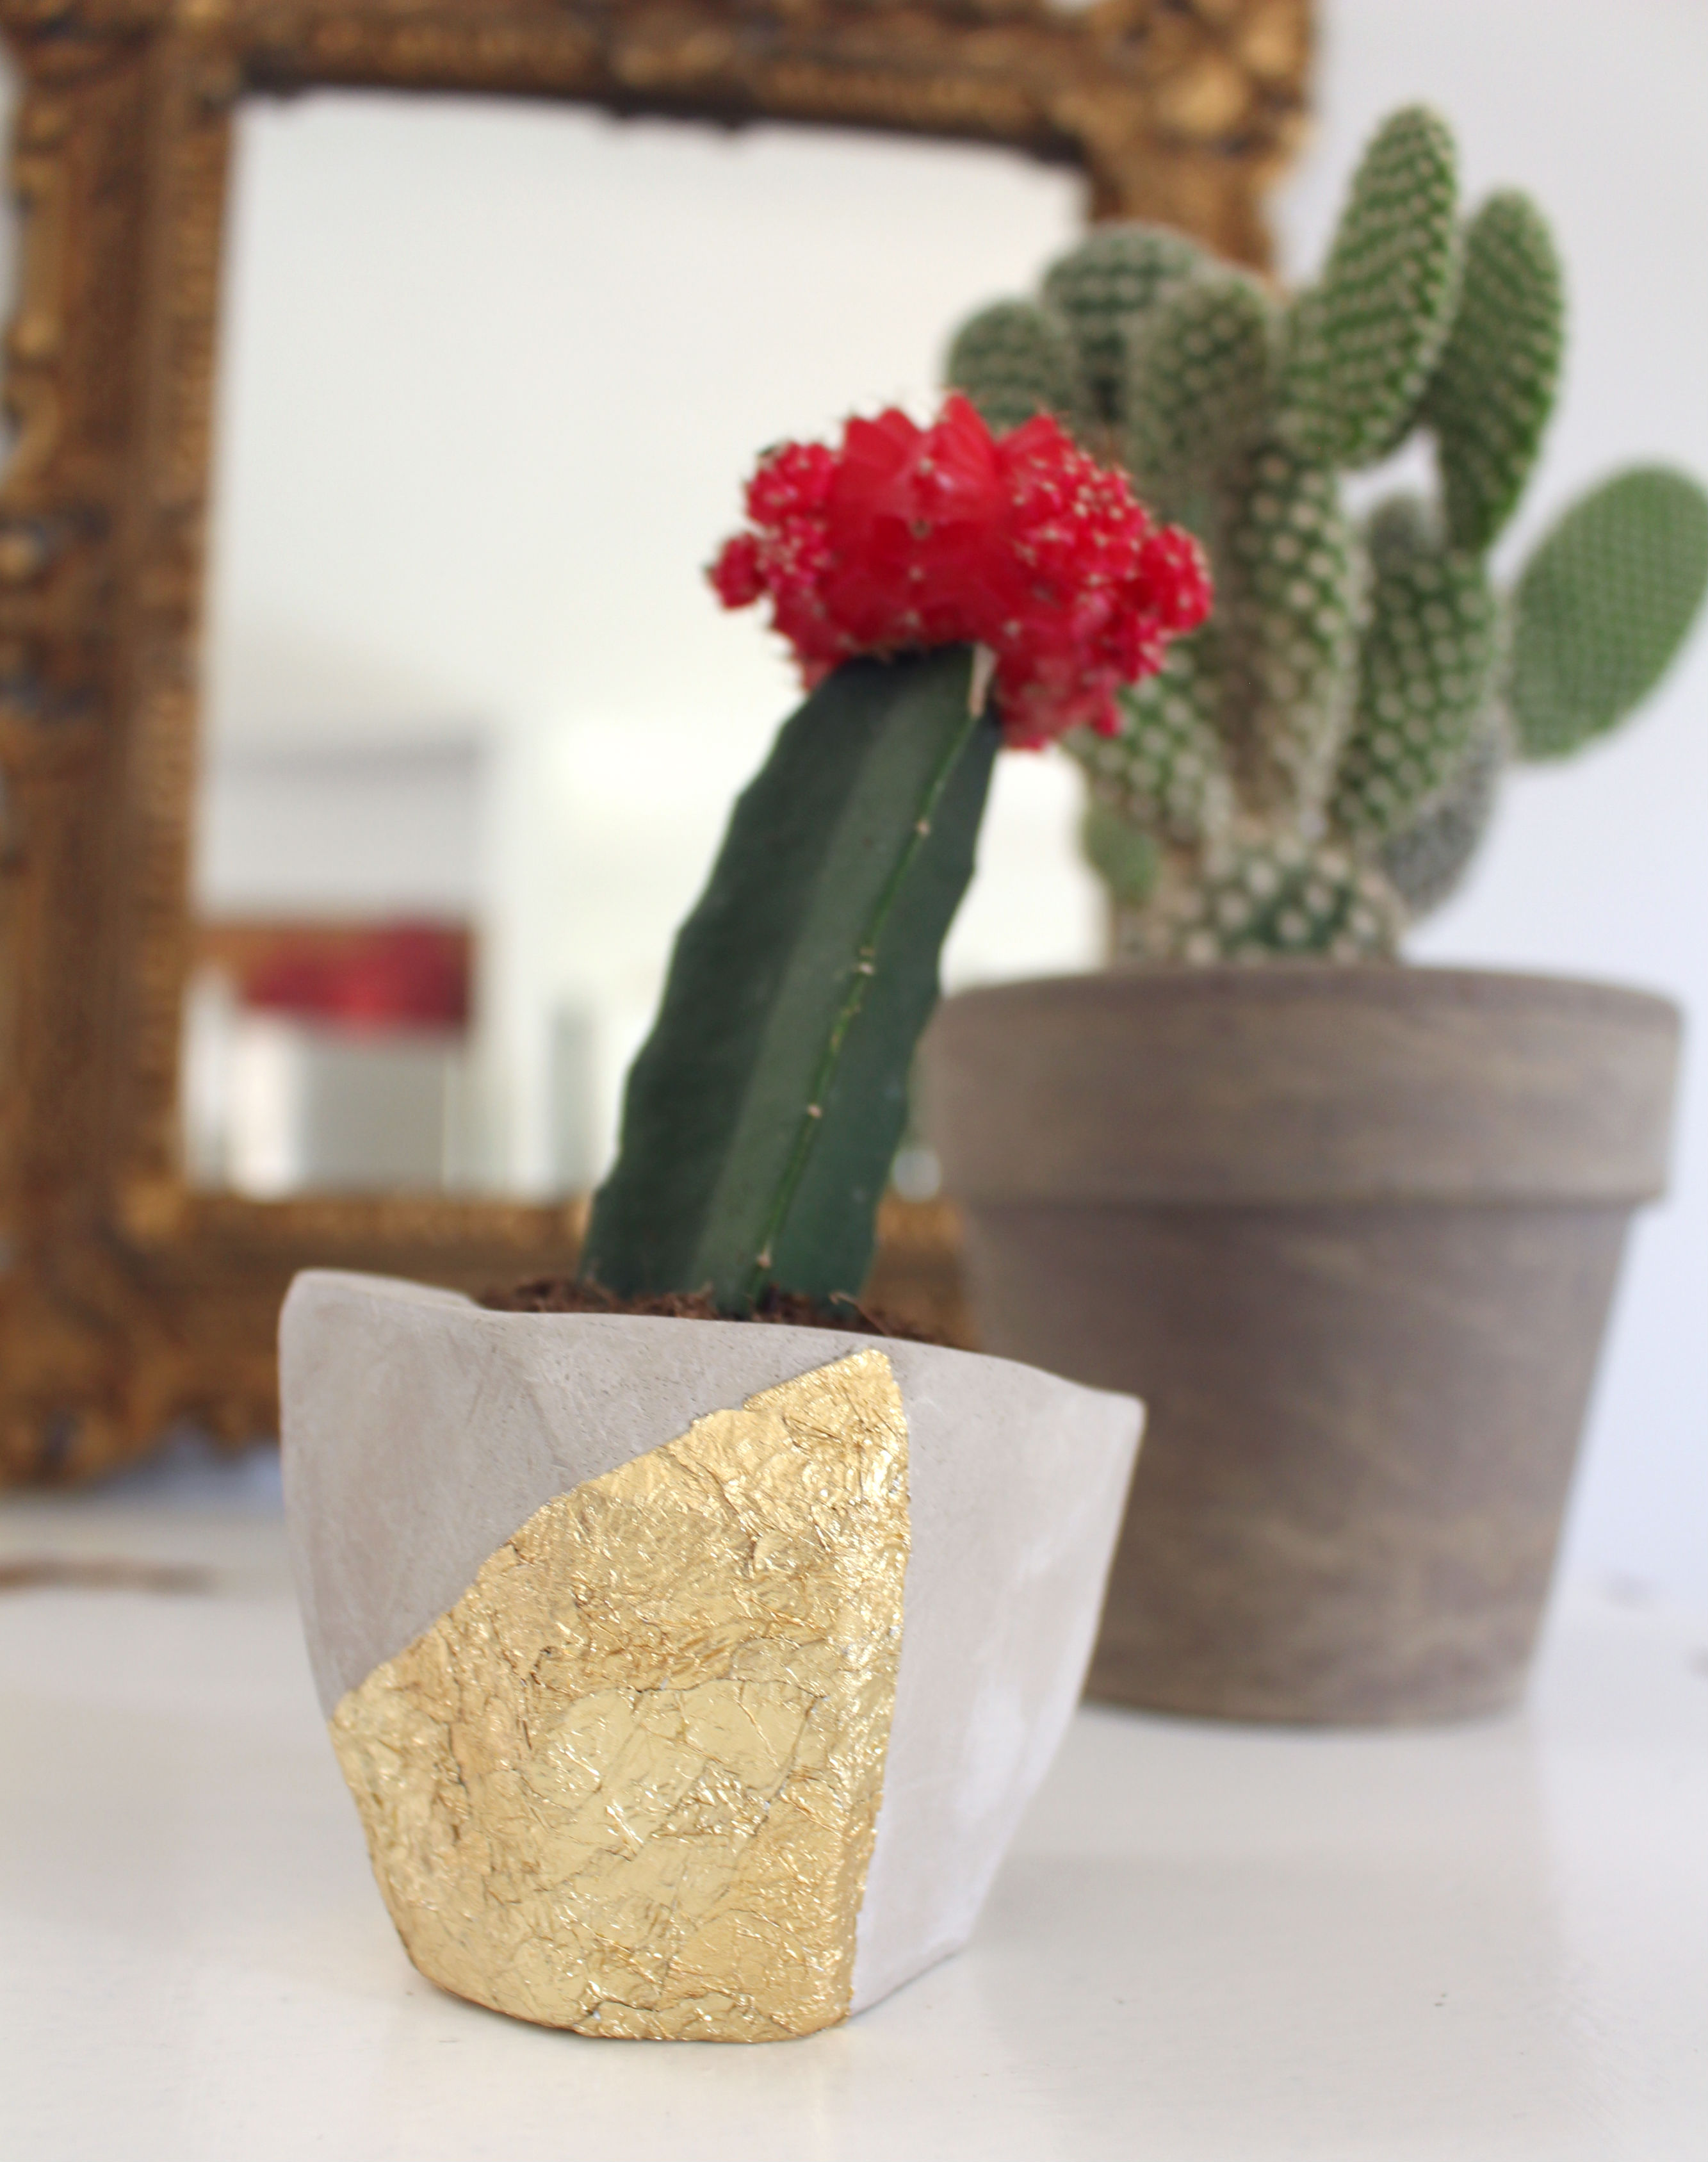 DIY Clay Planter Using Gold Leaf